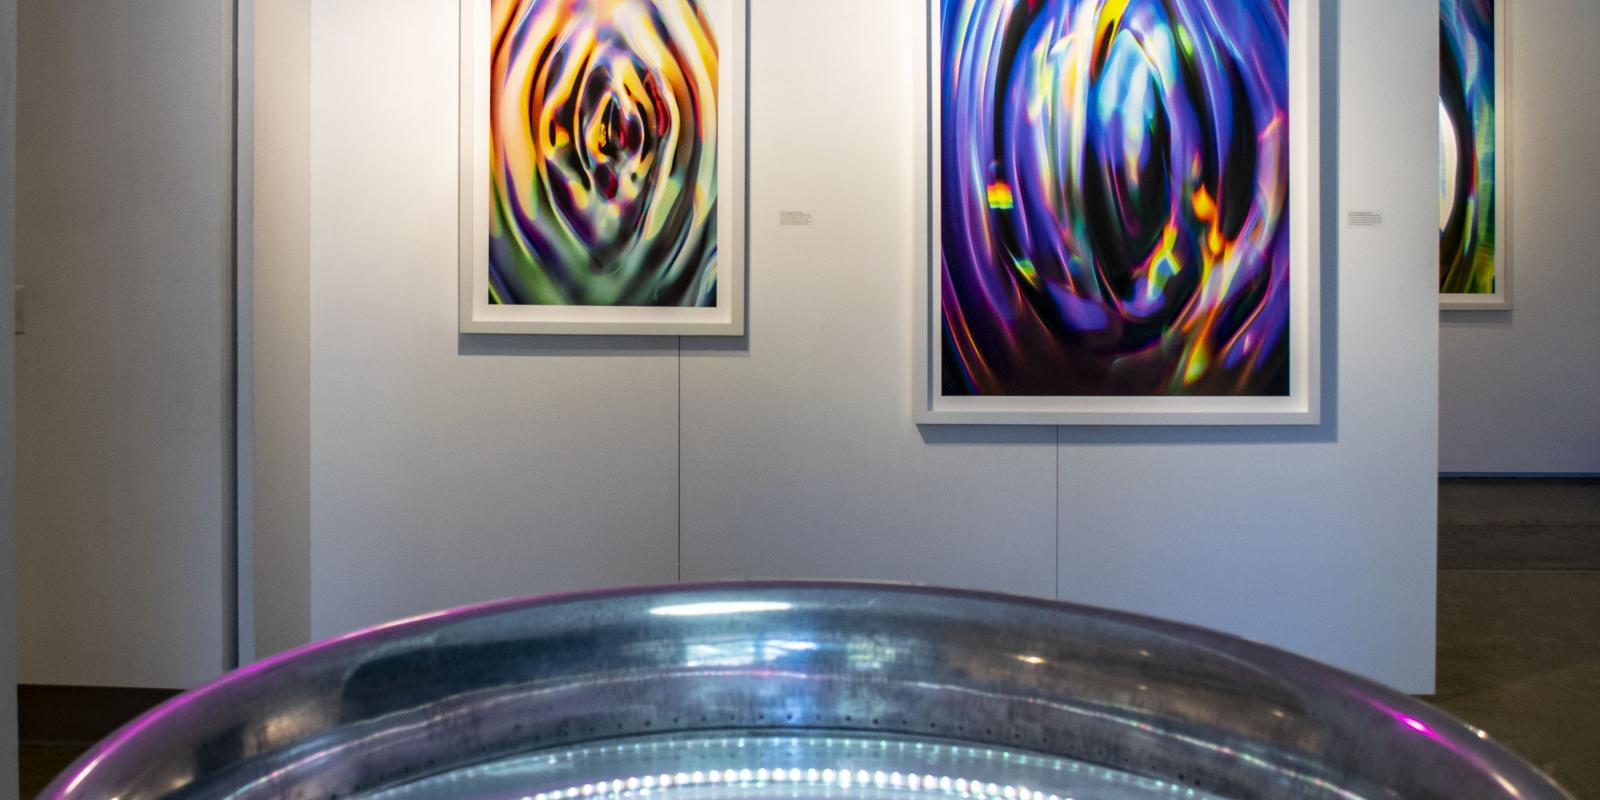 Front of gallery, Exhibition: Sasha vom Dorp: 15.15 Hz, Aug. 23 - Oct. 18, 2018, Curator: Michele Cairella Fillmore, W. Keith & Janet Kellogg Art Gallery, Cal Poly Pomona. [In foreground: a jet engine part redesigned by the artist as a machine to quiver, pulse and tremble water surface (Photo Credit: William W. Gunn)]